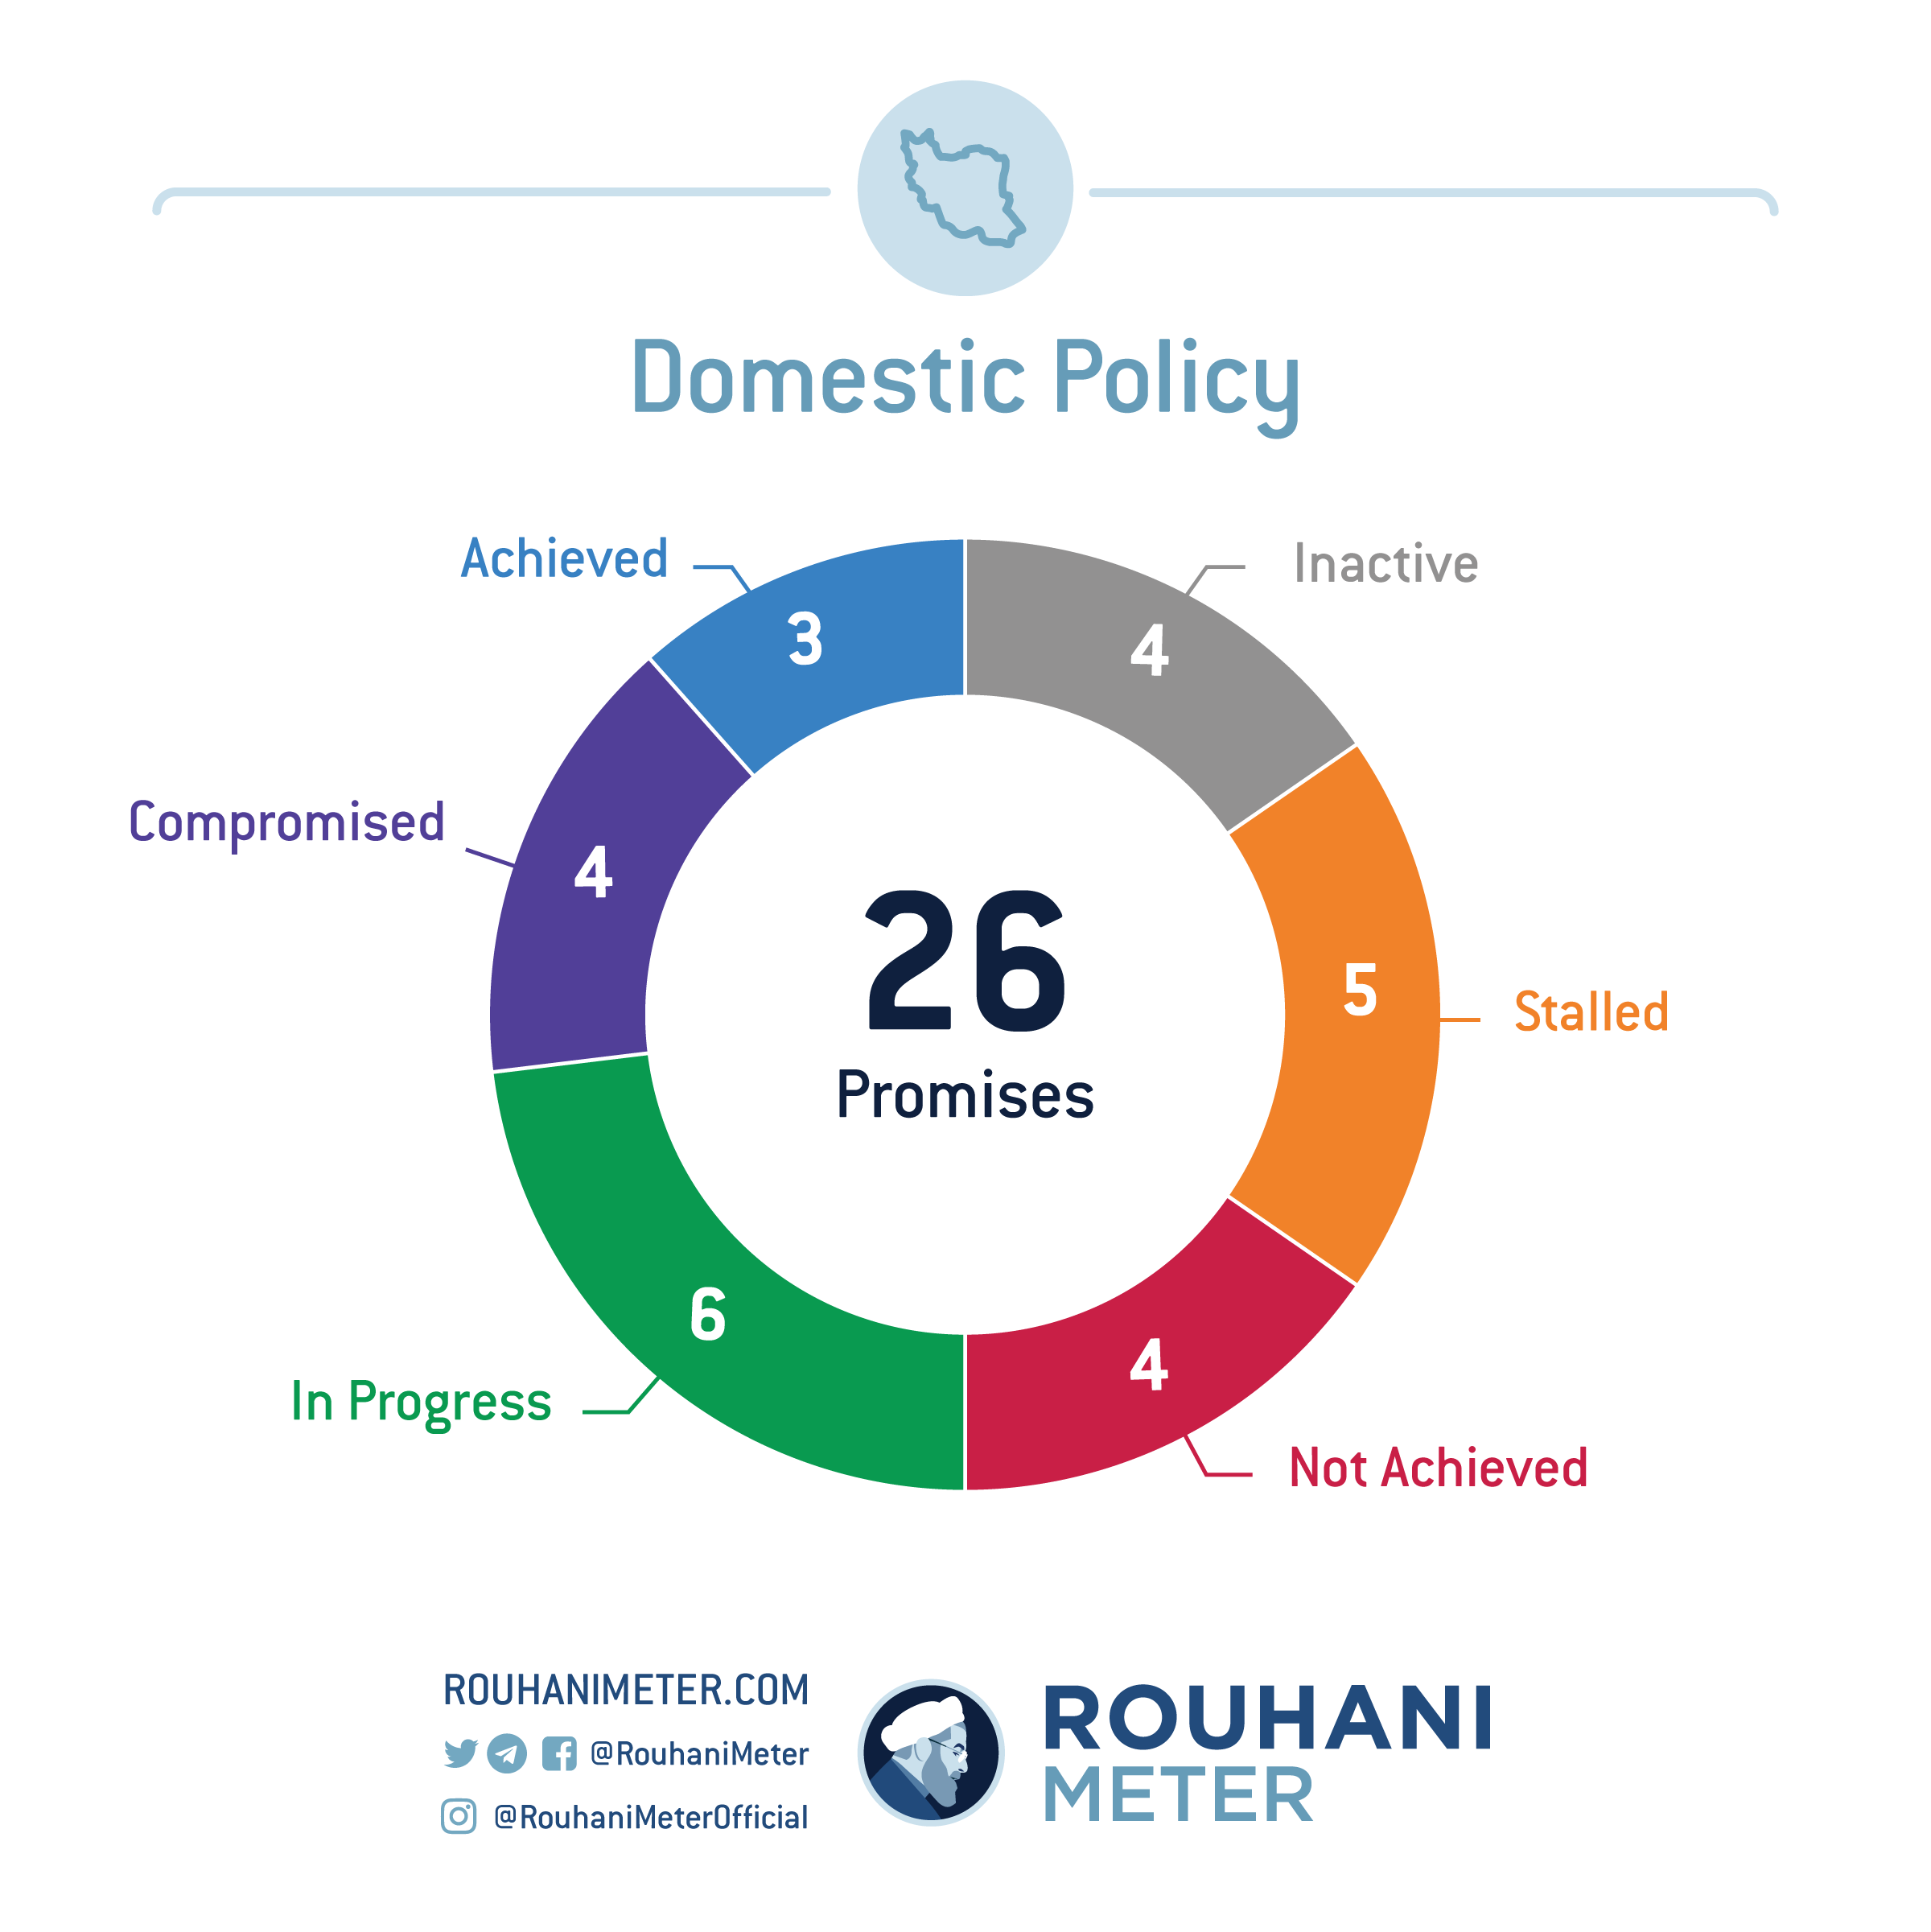 RM-AnnualRepor2018-domestic-policy-EN